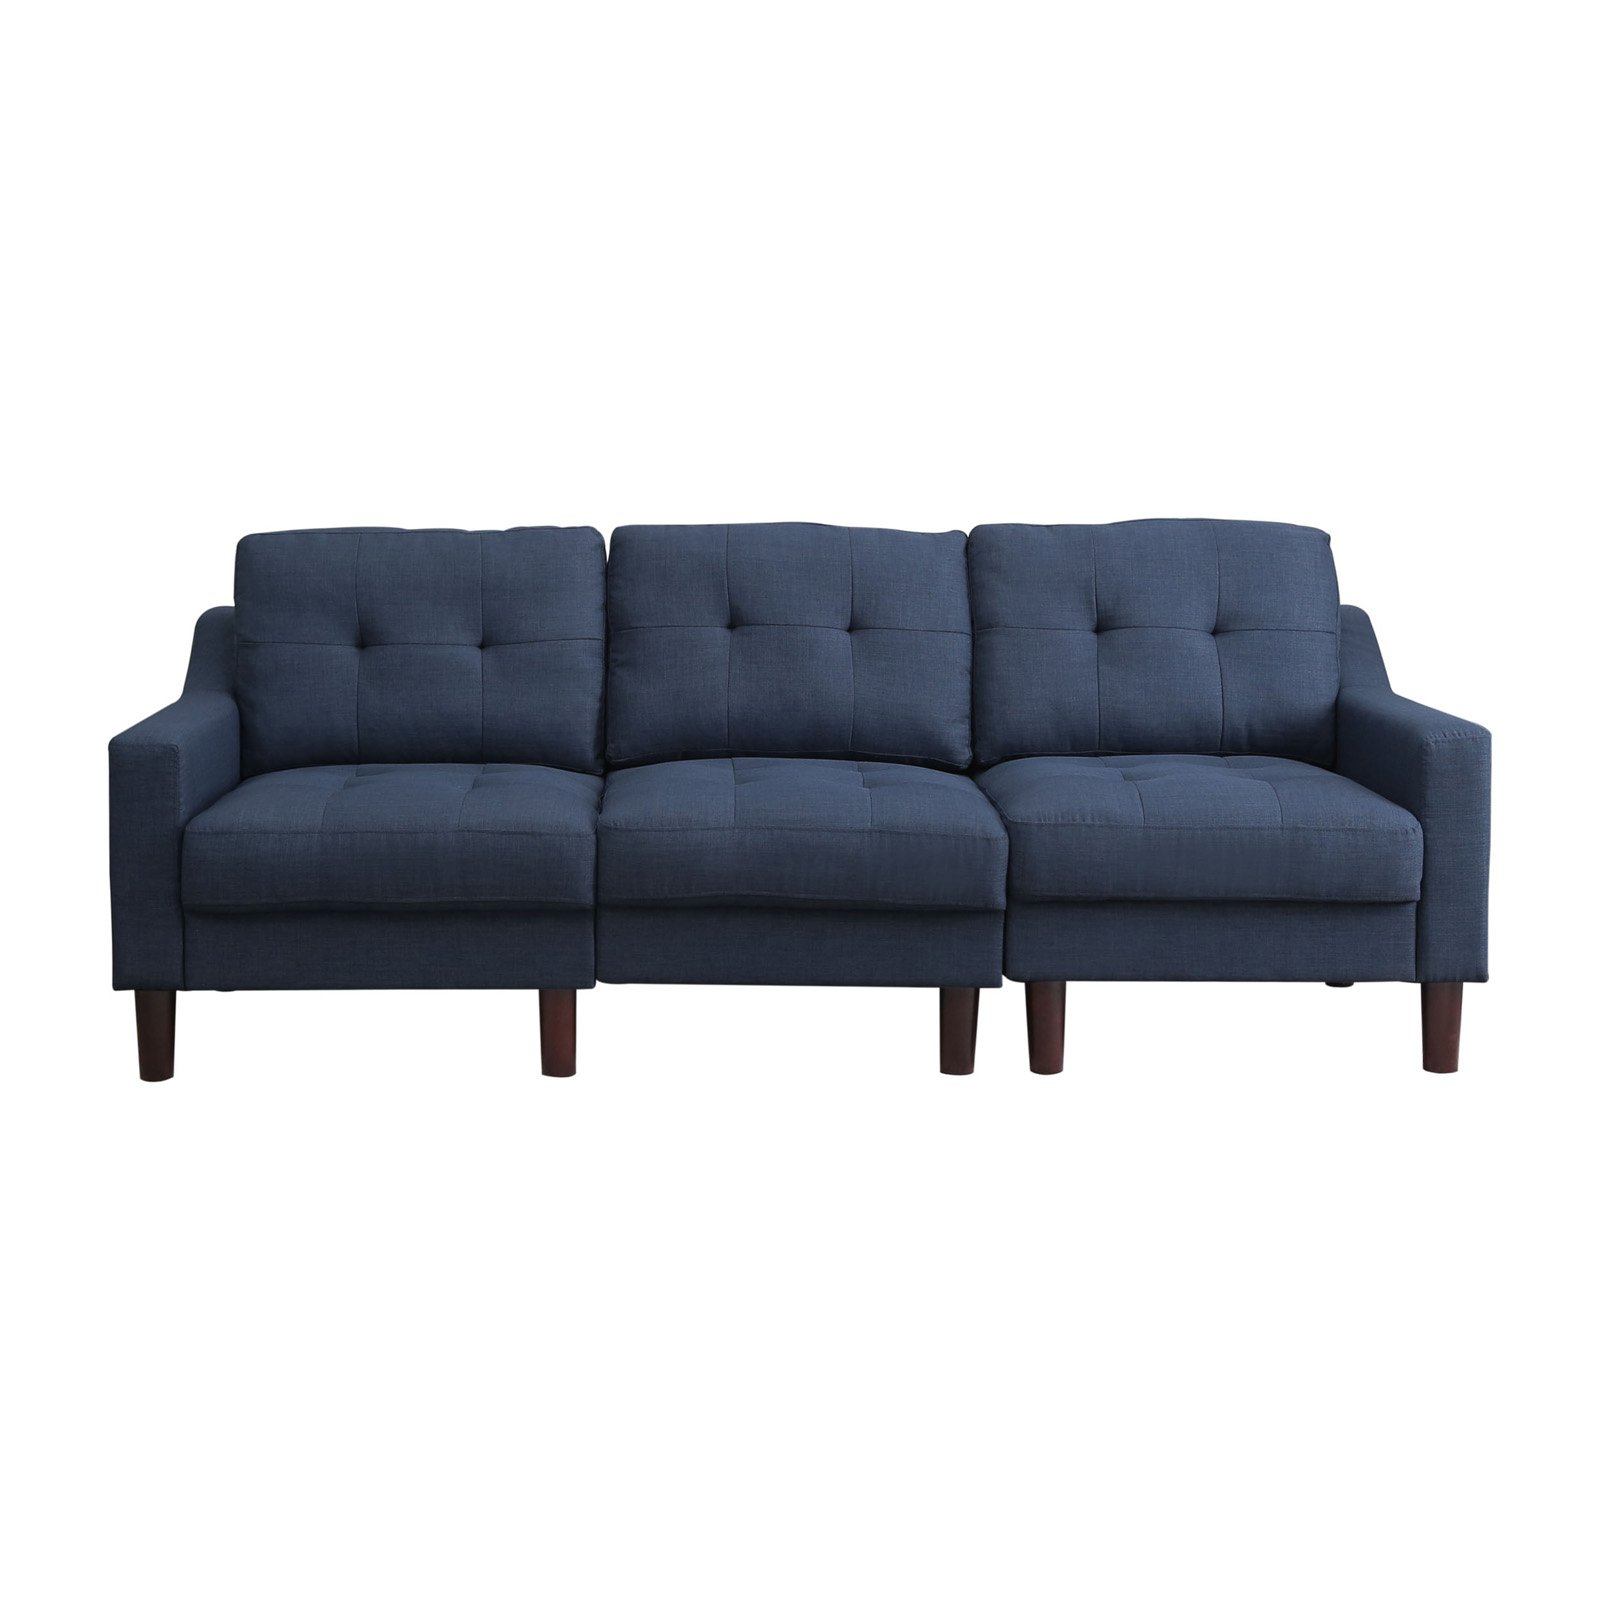 Fabulous Futons Walmart Com Home Interior And Landscaping Ologienasavecom